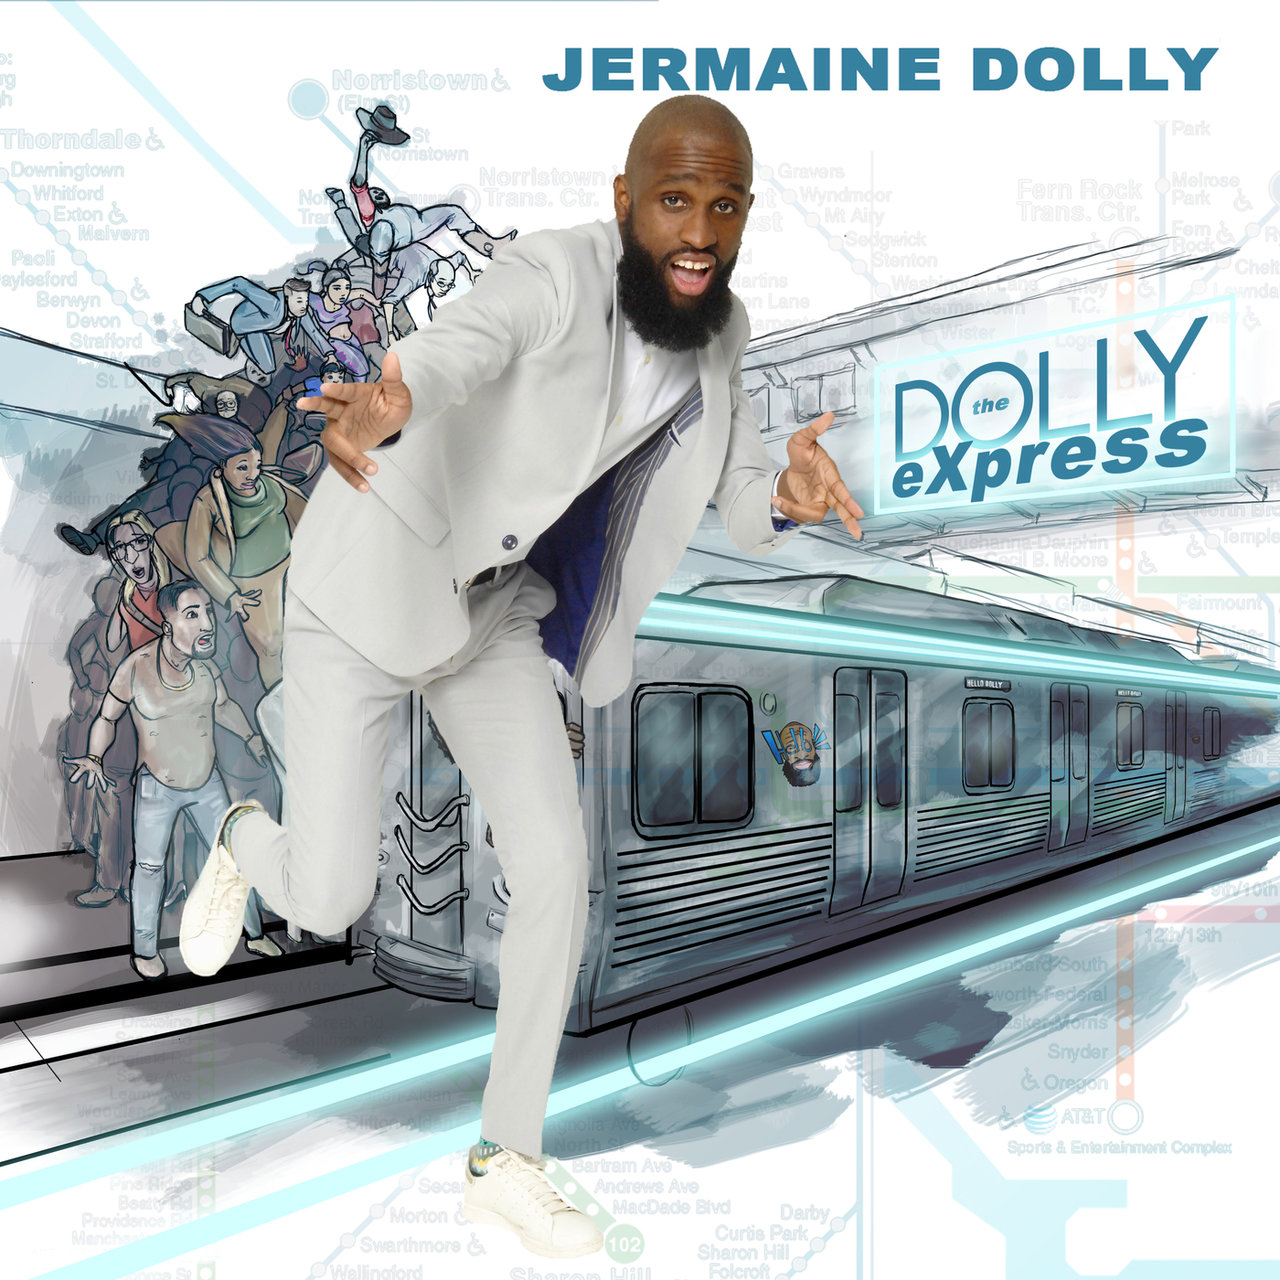 Jermaine Dolly - The Dolly Express